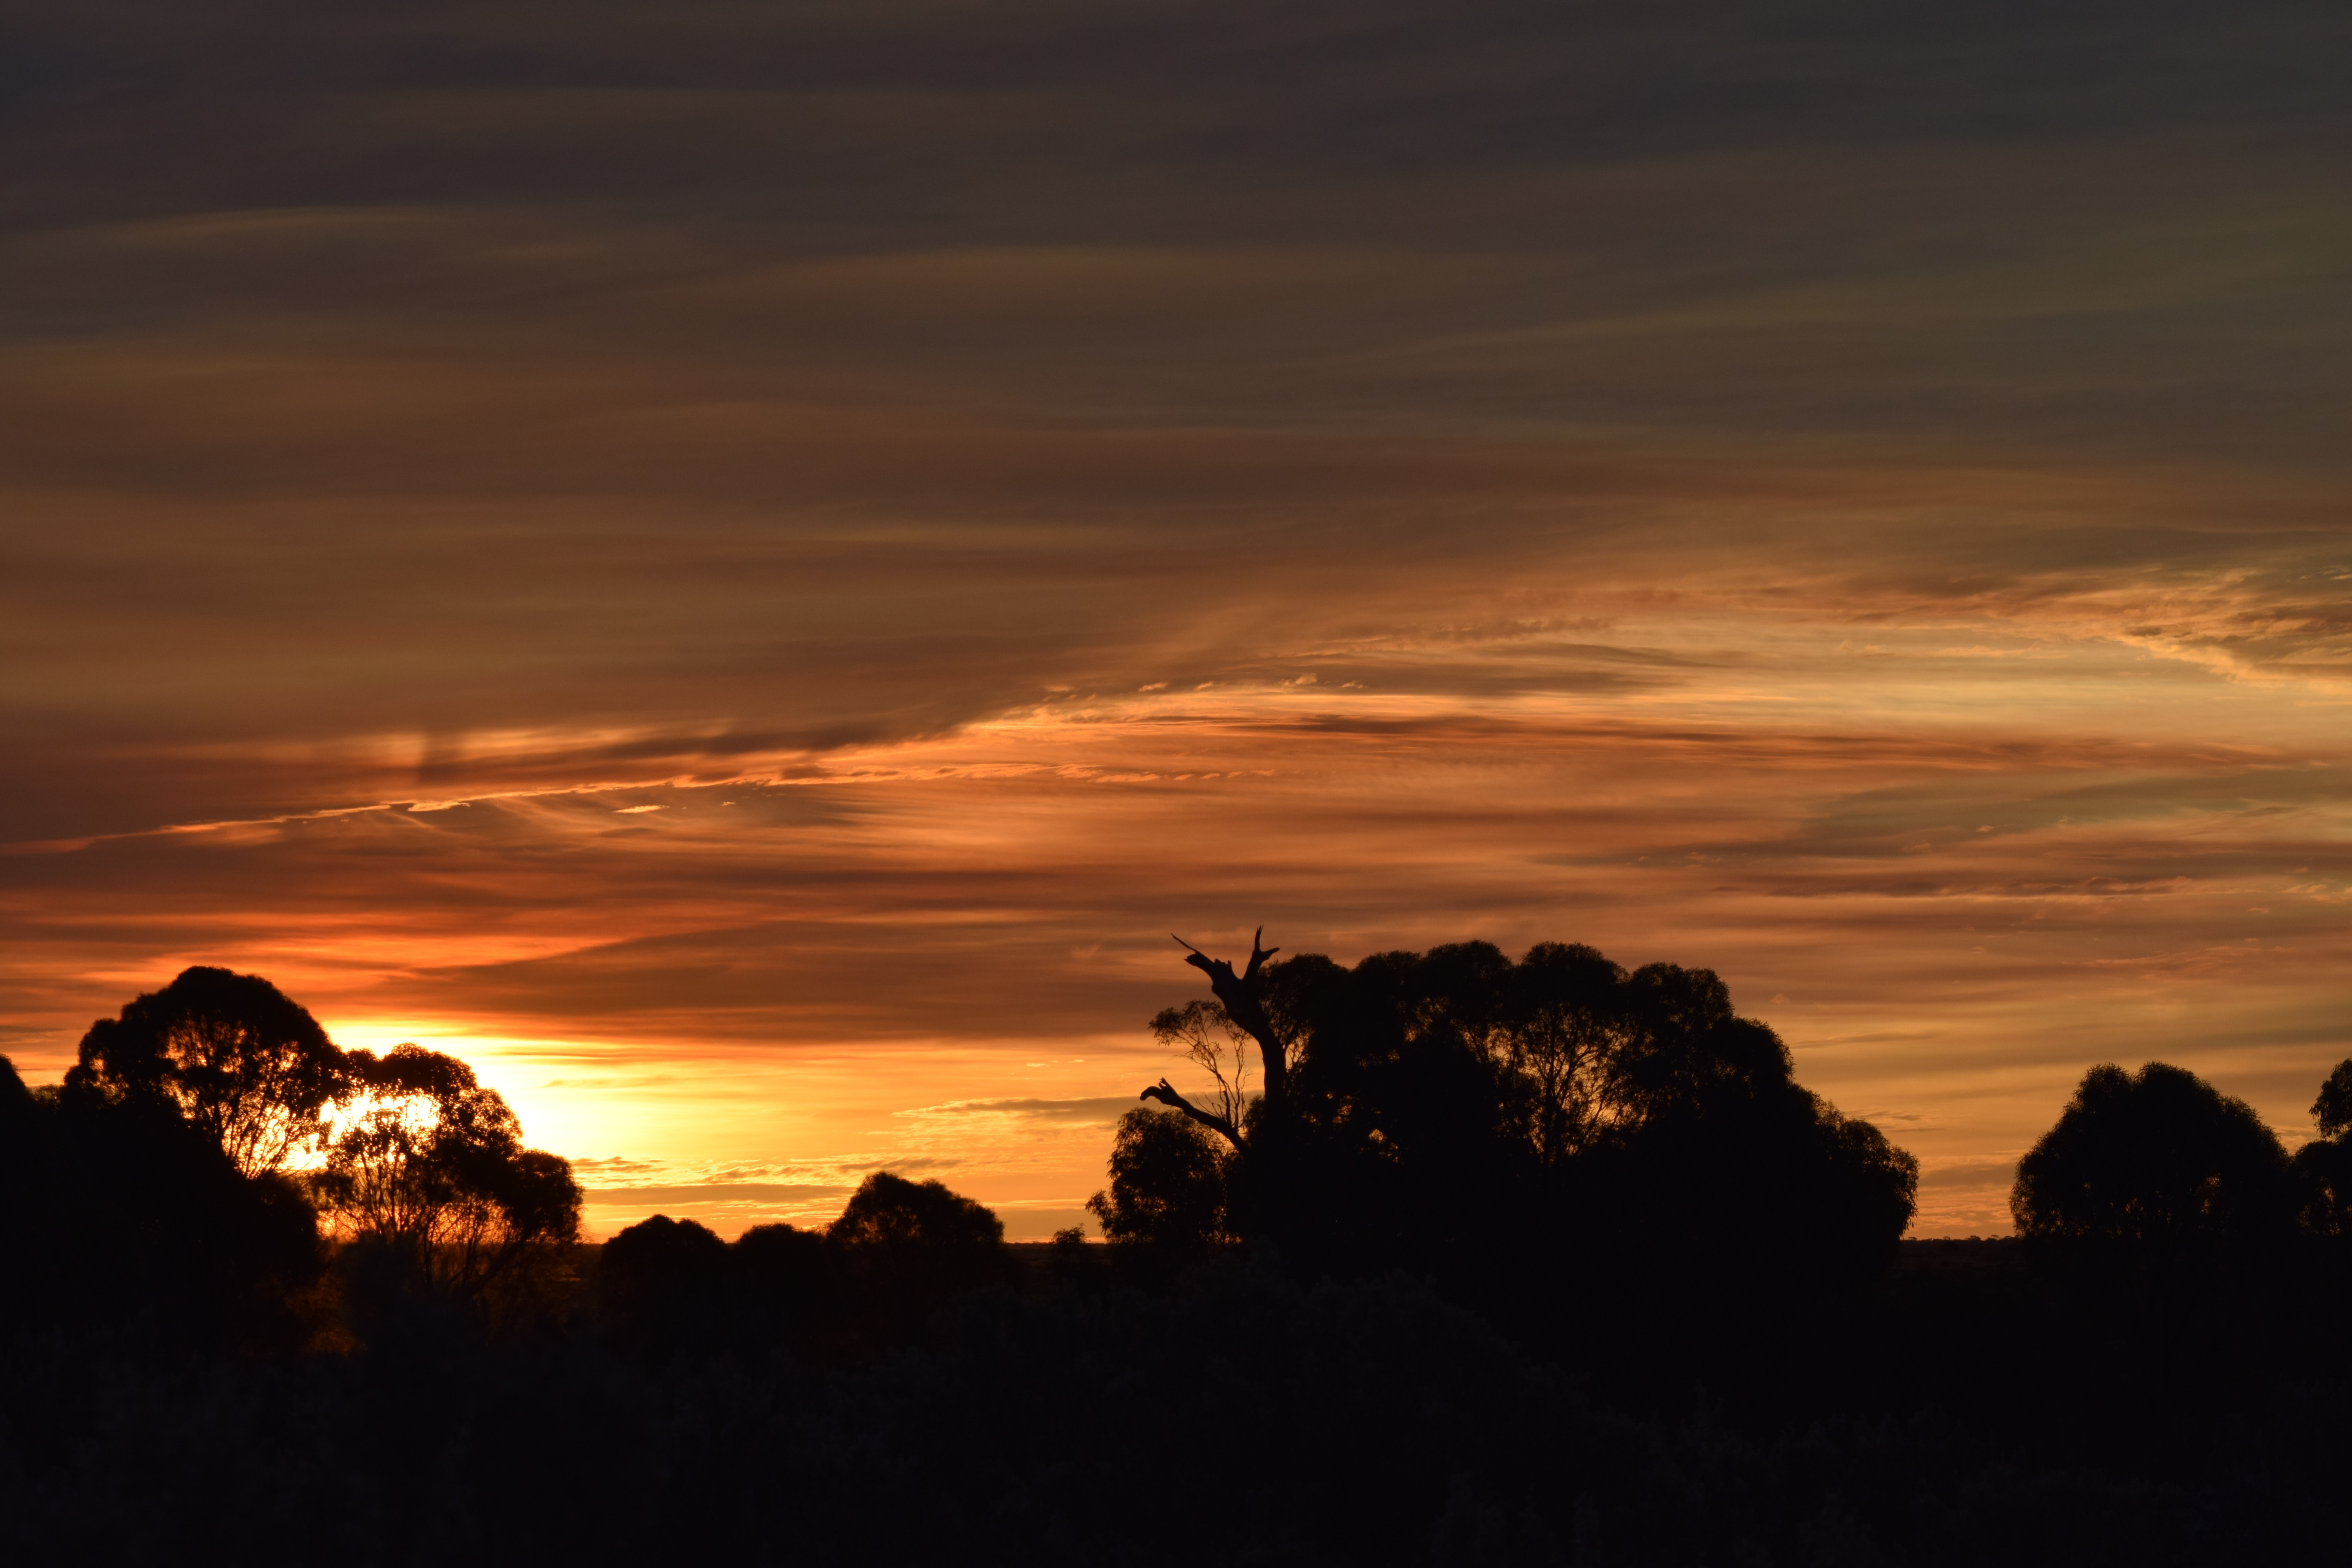 Silhouette Photography of Tress during Sunset, Silhouette, Scenic, Scenery, Peaceful, HQ Photo